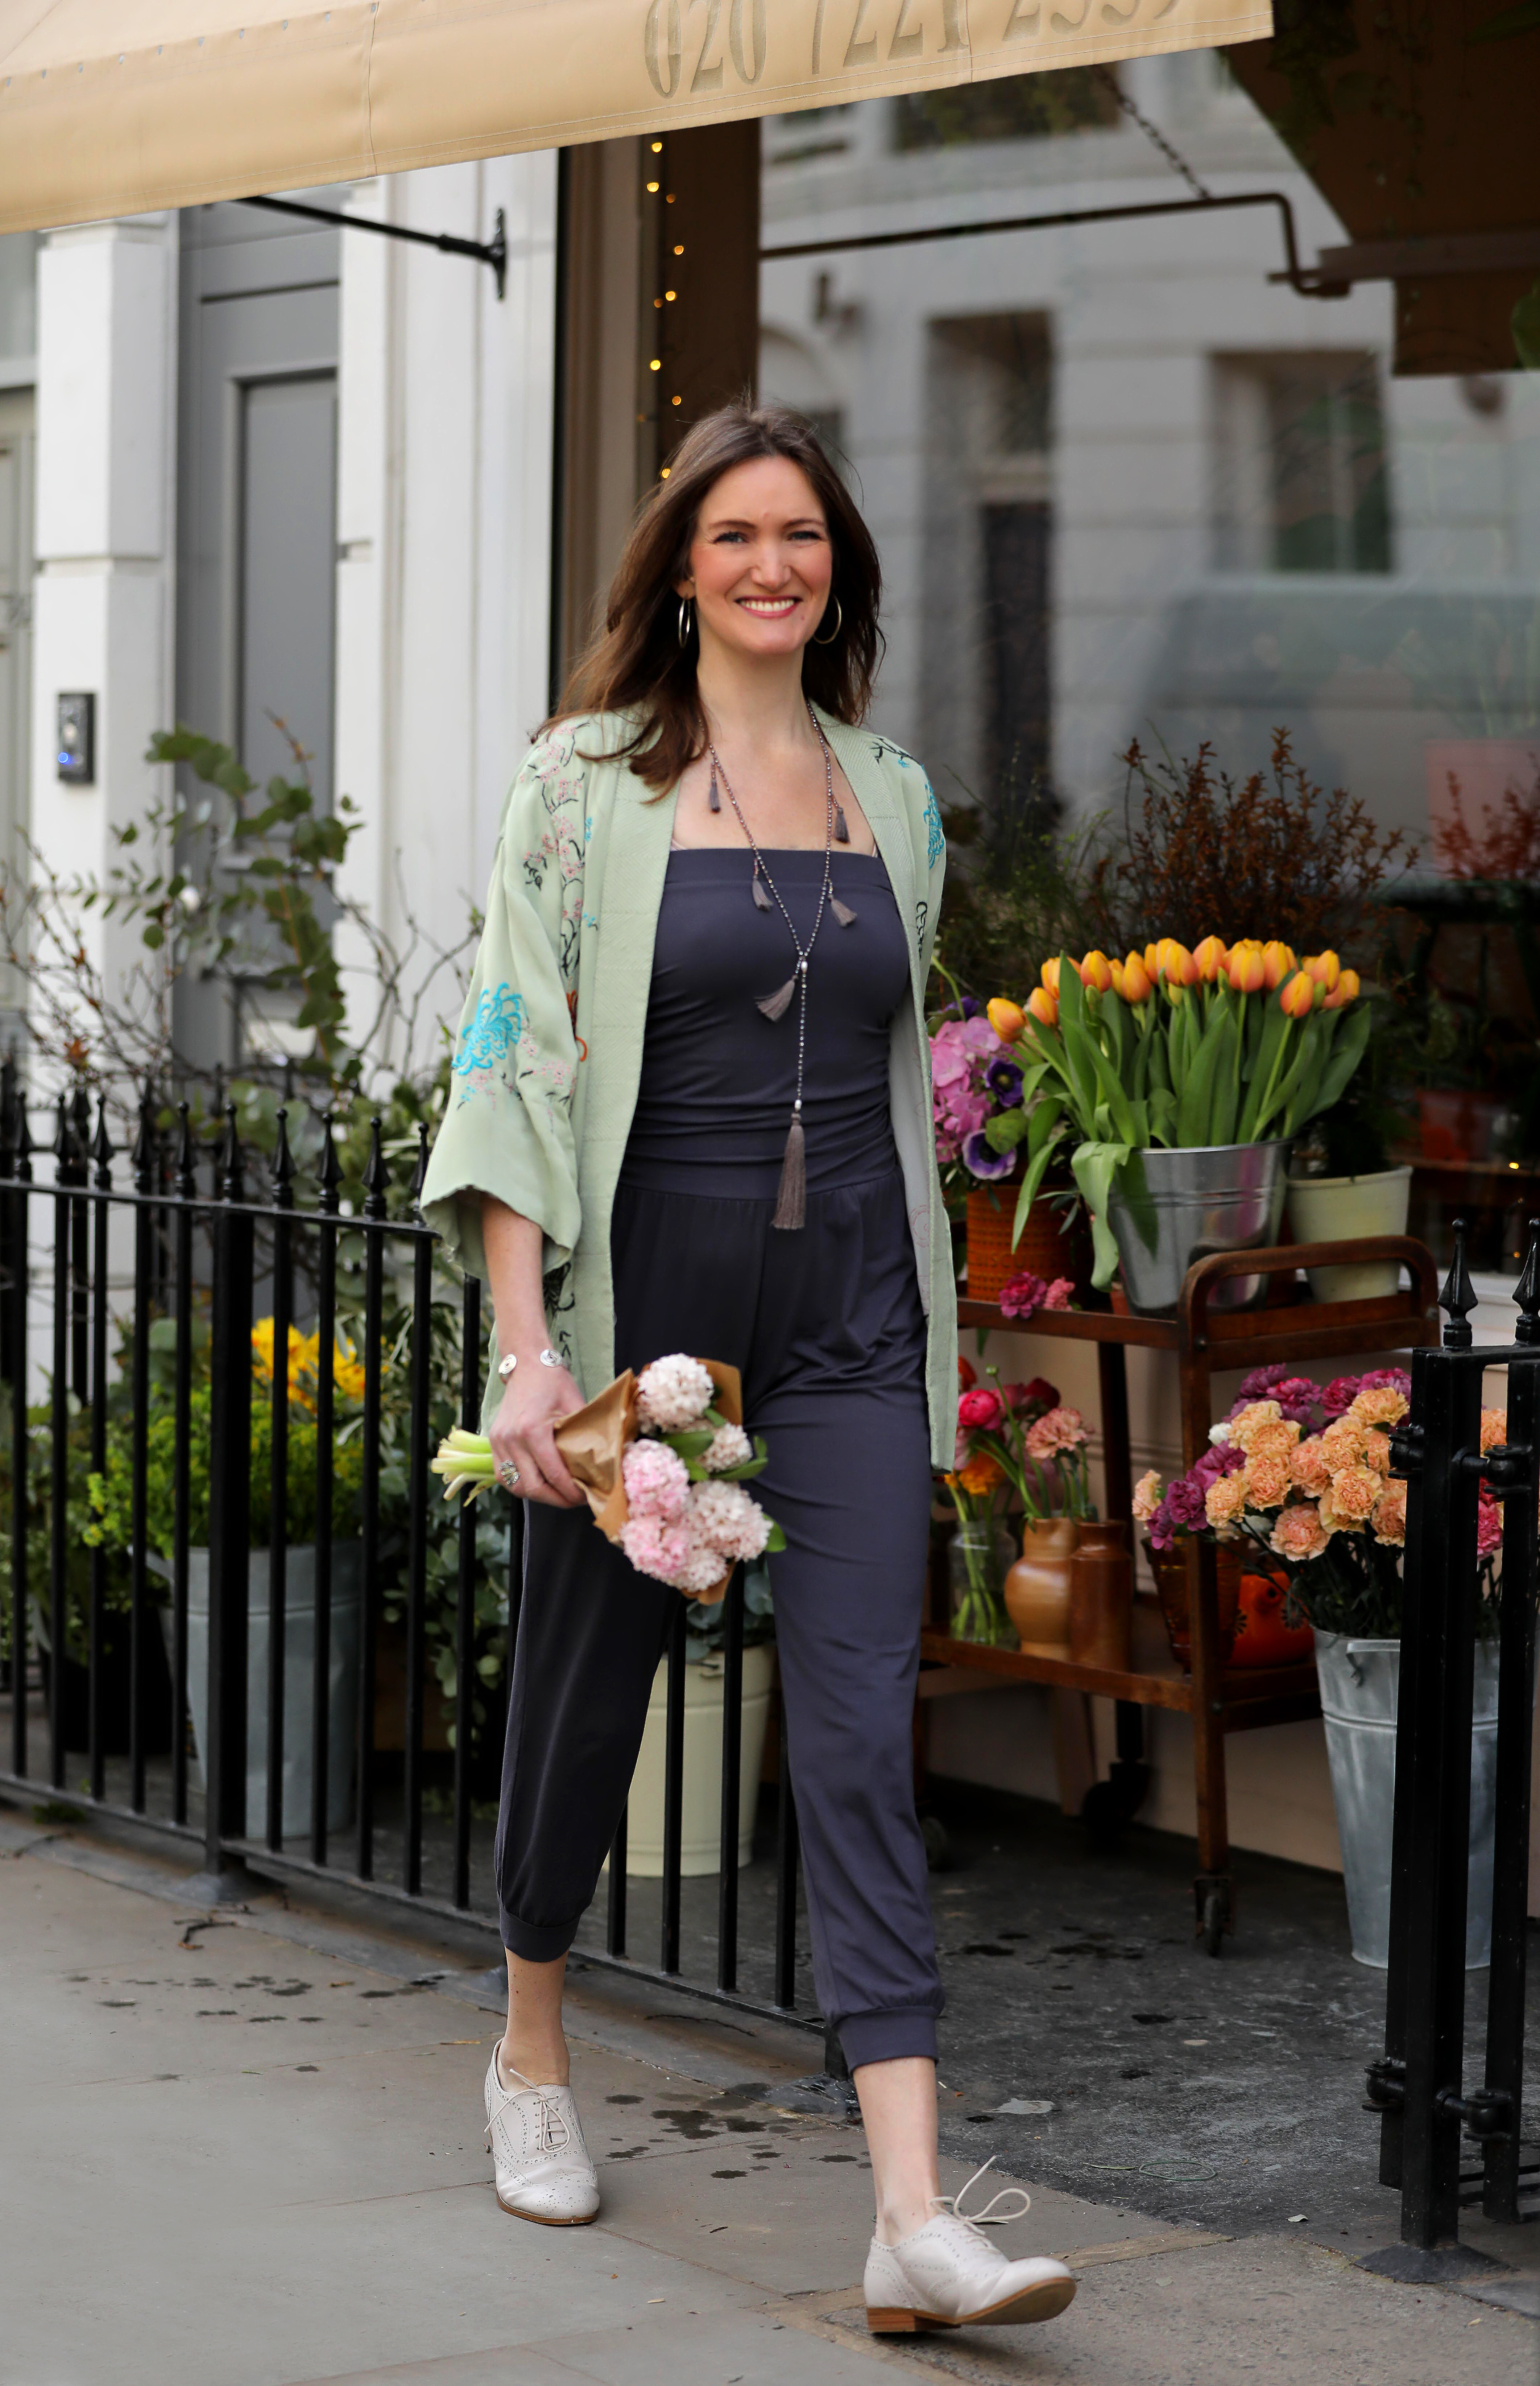 Alice Asquith wearing Asquith organic yoga clothes